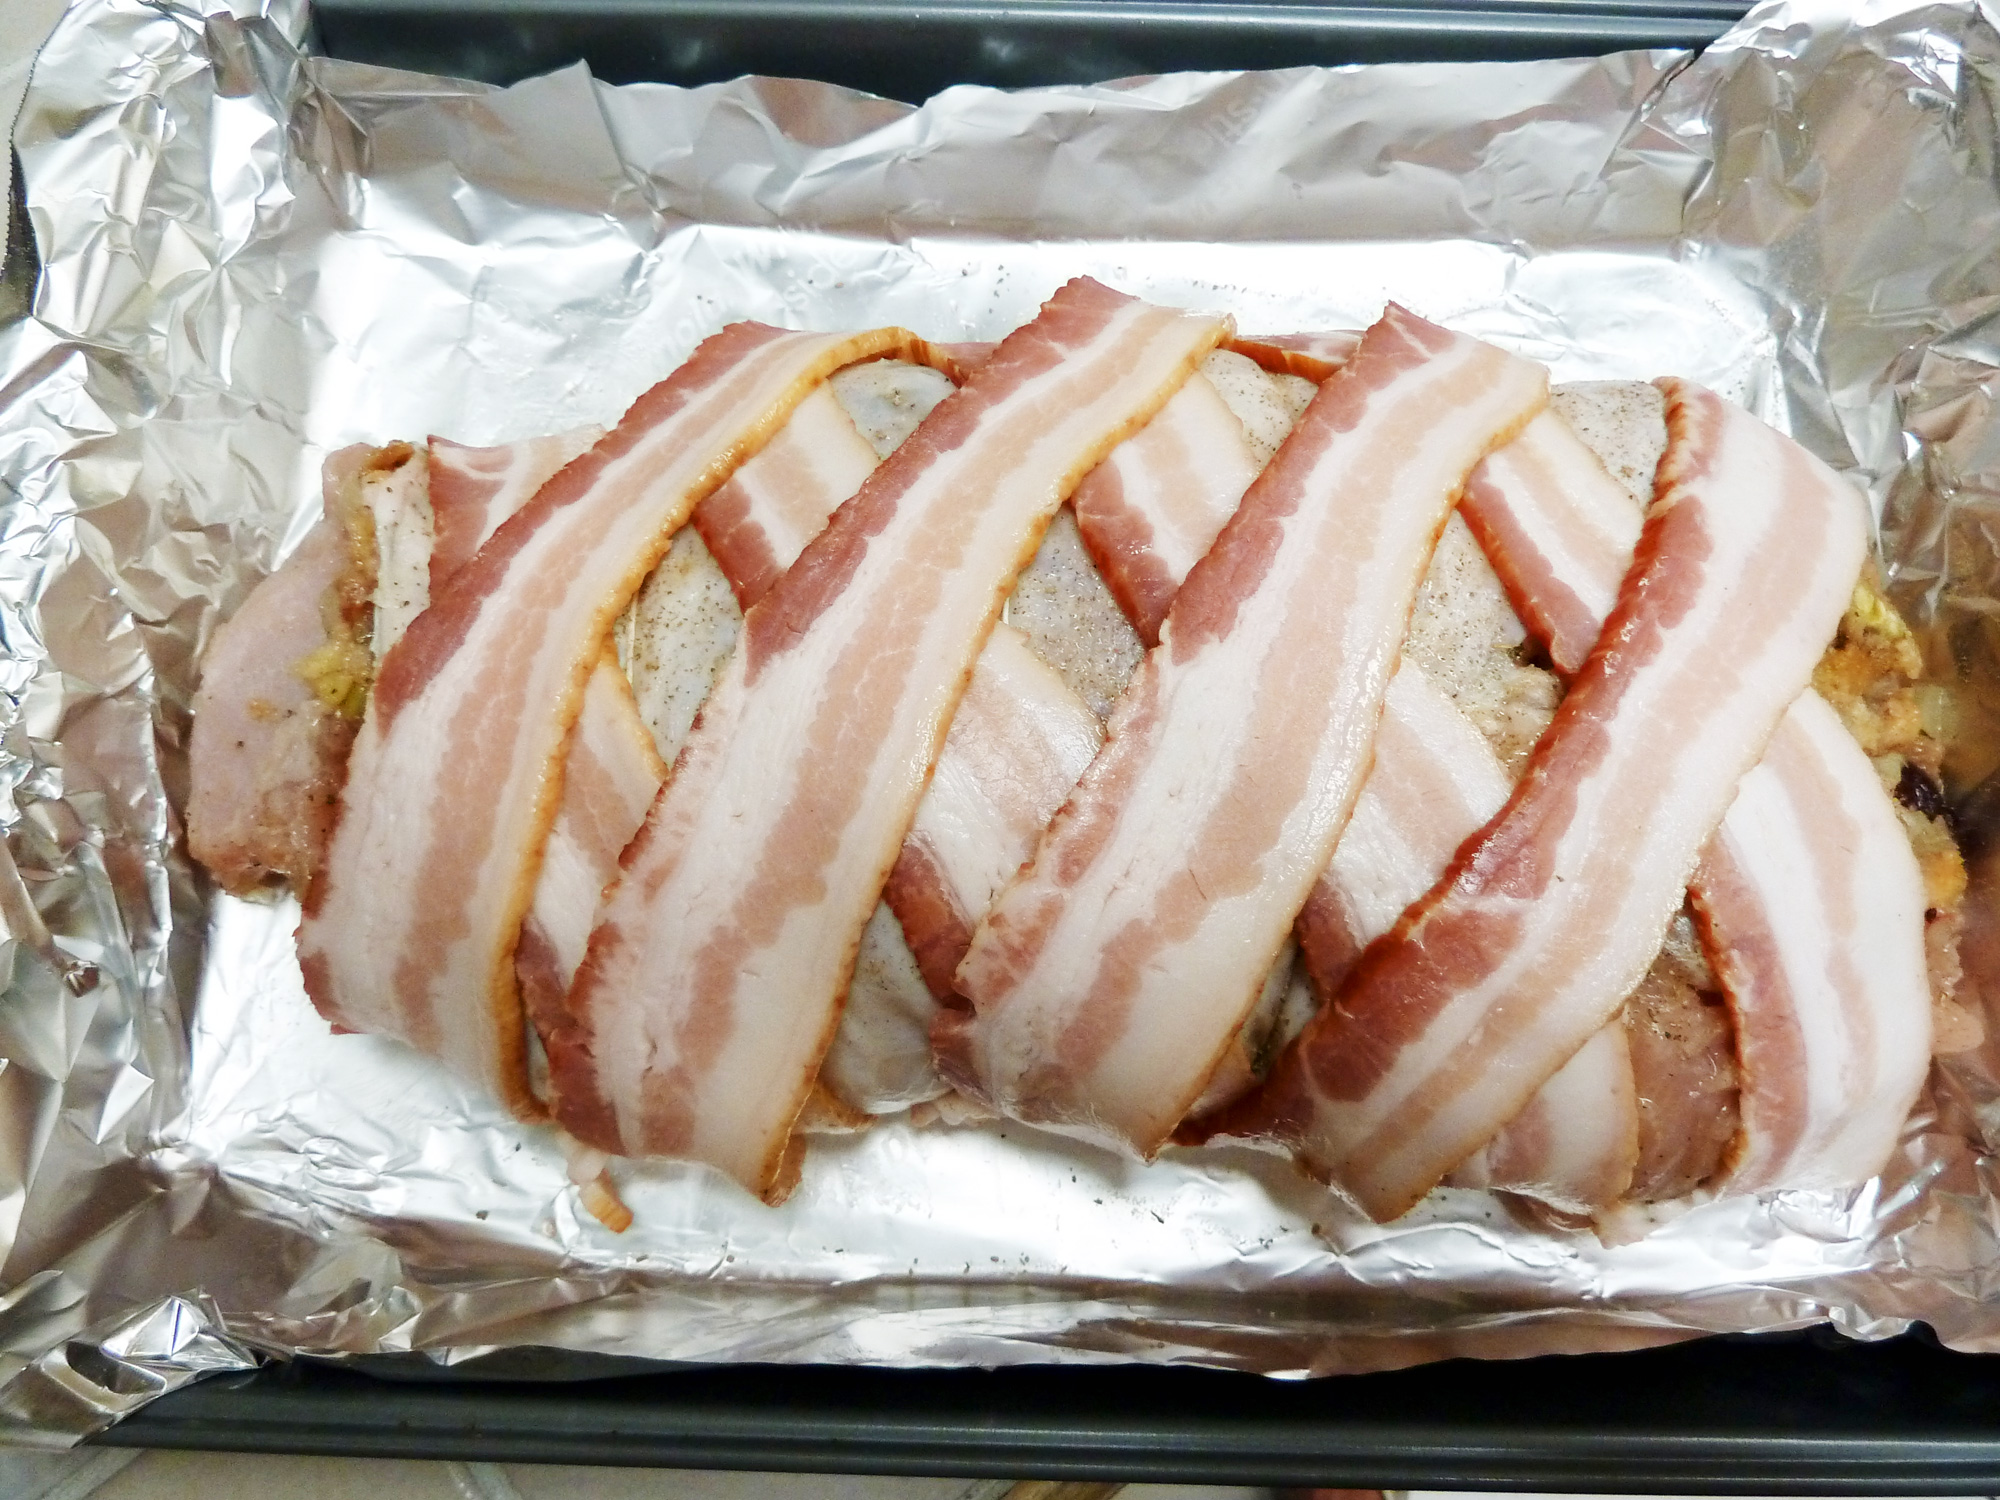 Stuffed turkey breast is wrapped with criss-crossed bacon and ready to go into the oven.